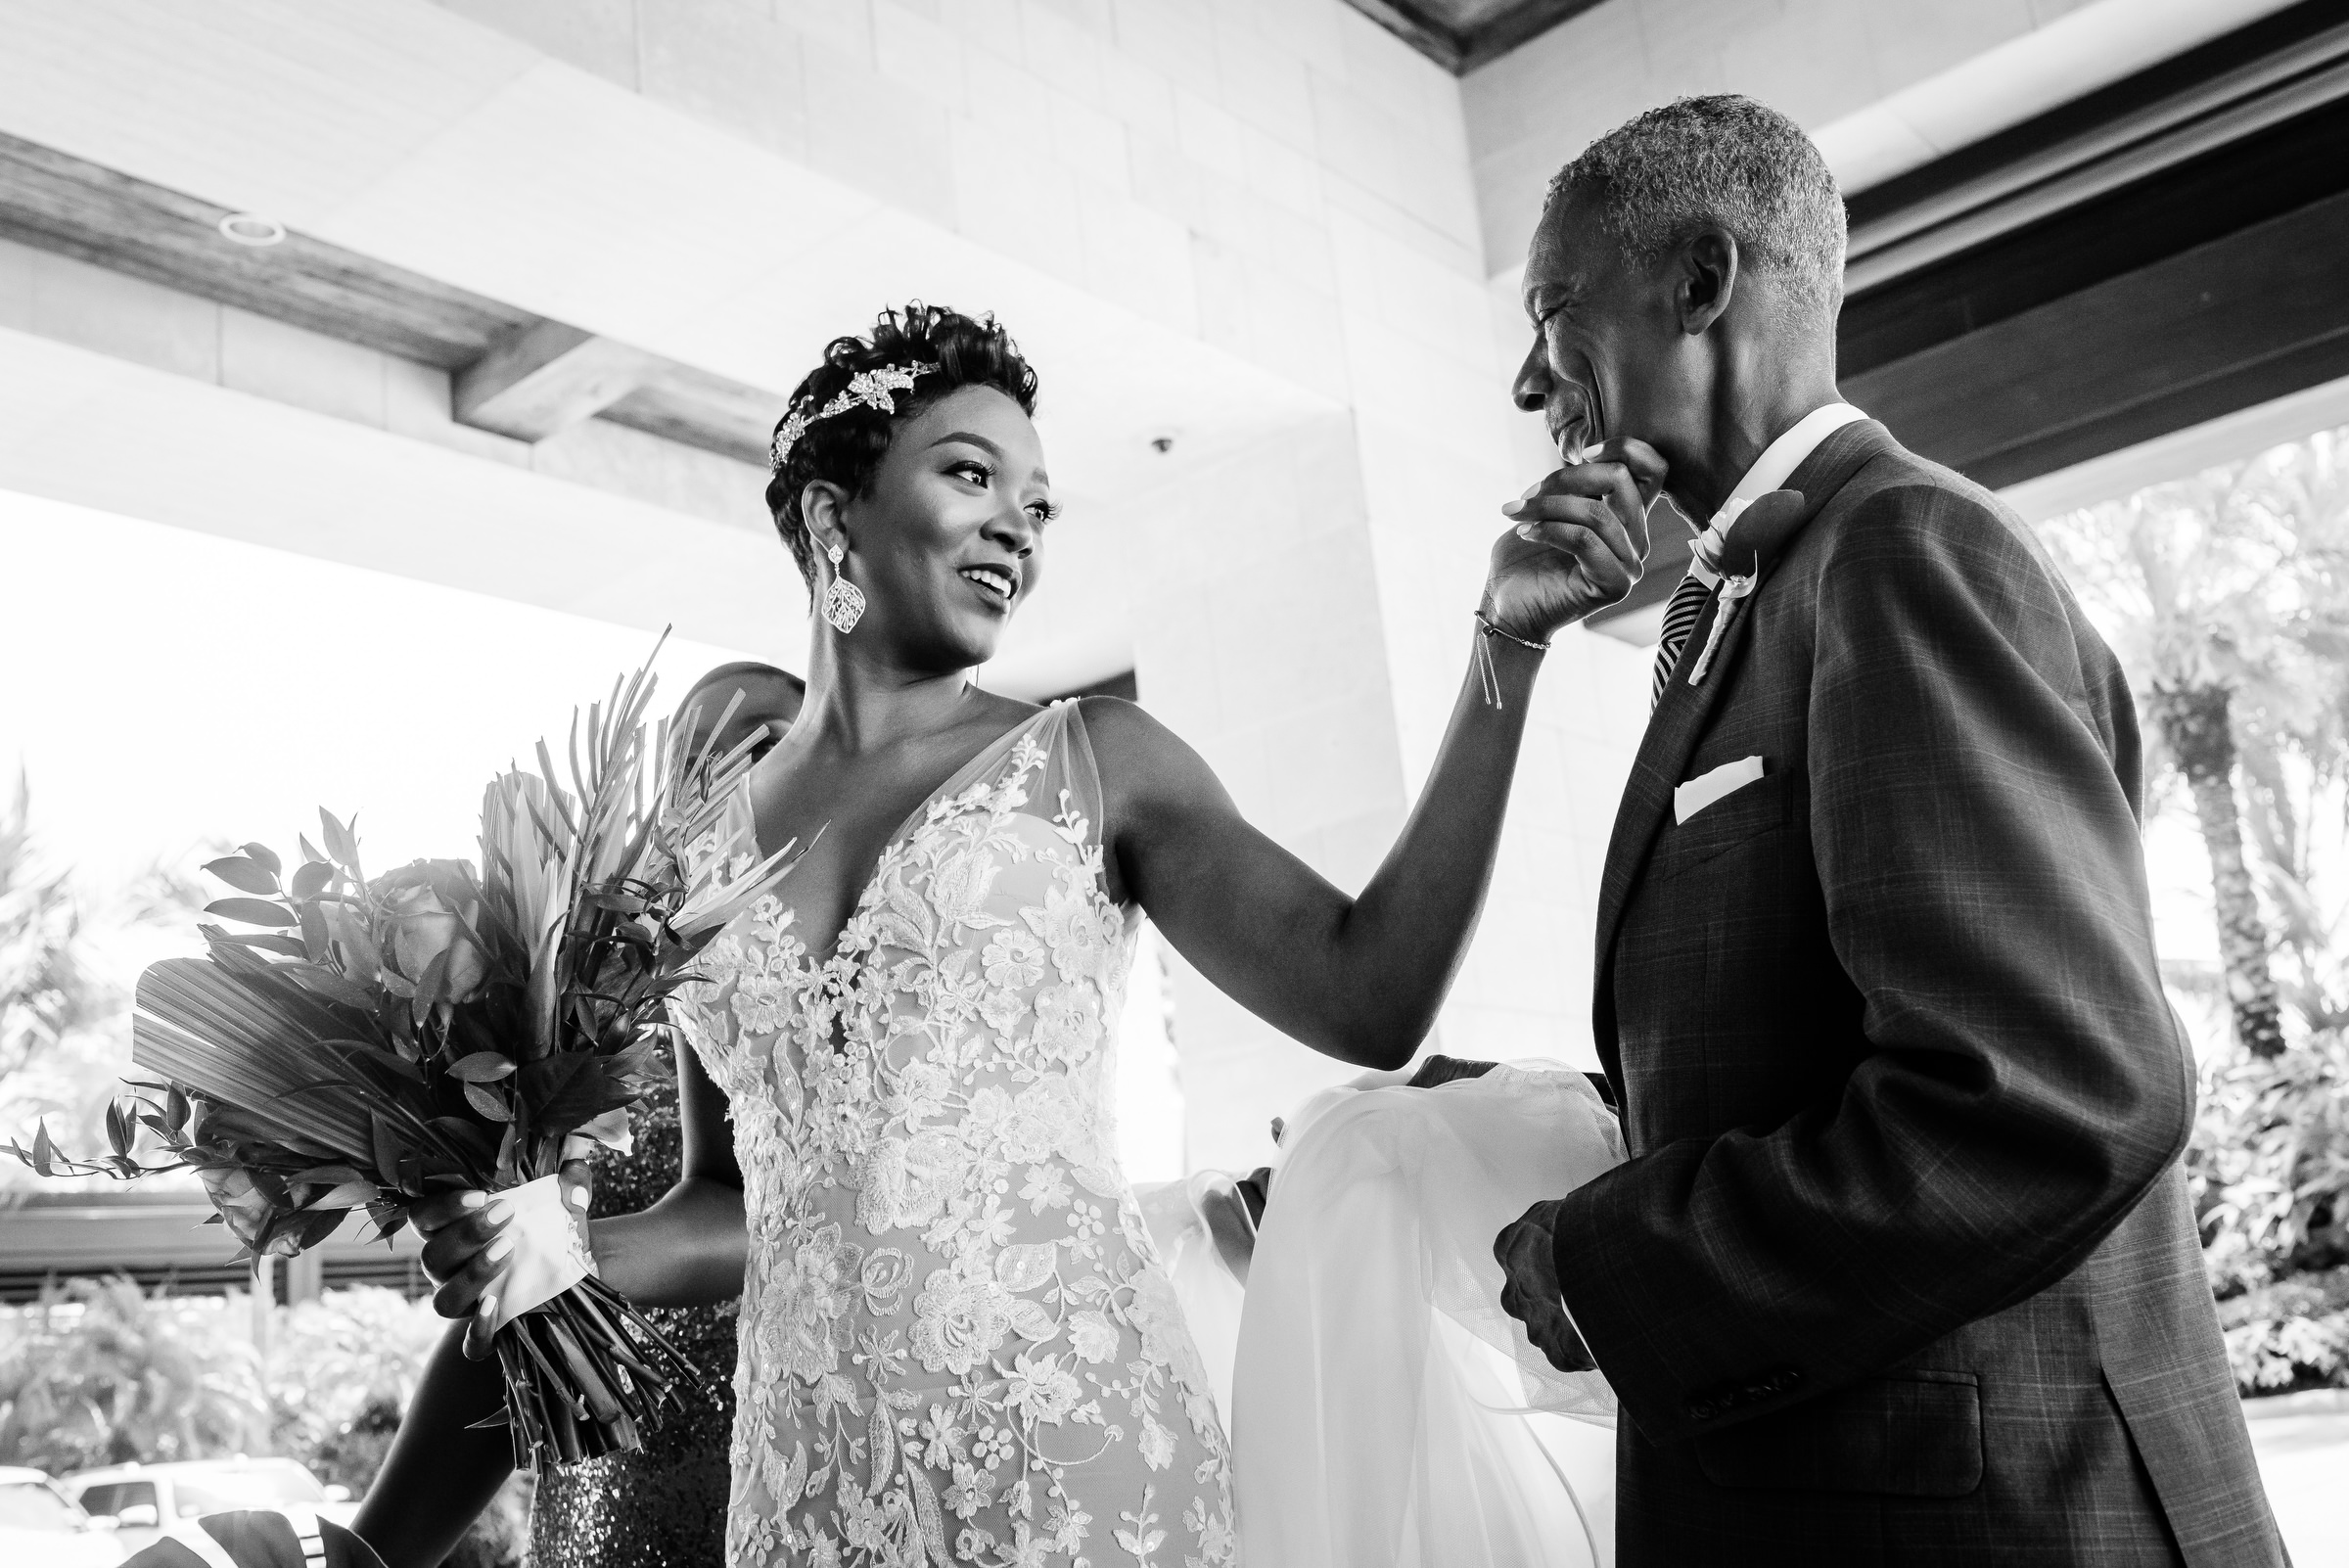 Affectionate gesture of bride to father nassau bahamas - photo by Kirth Bobb Photography